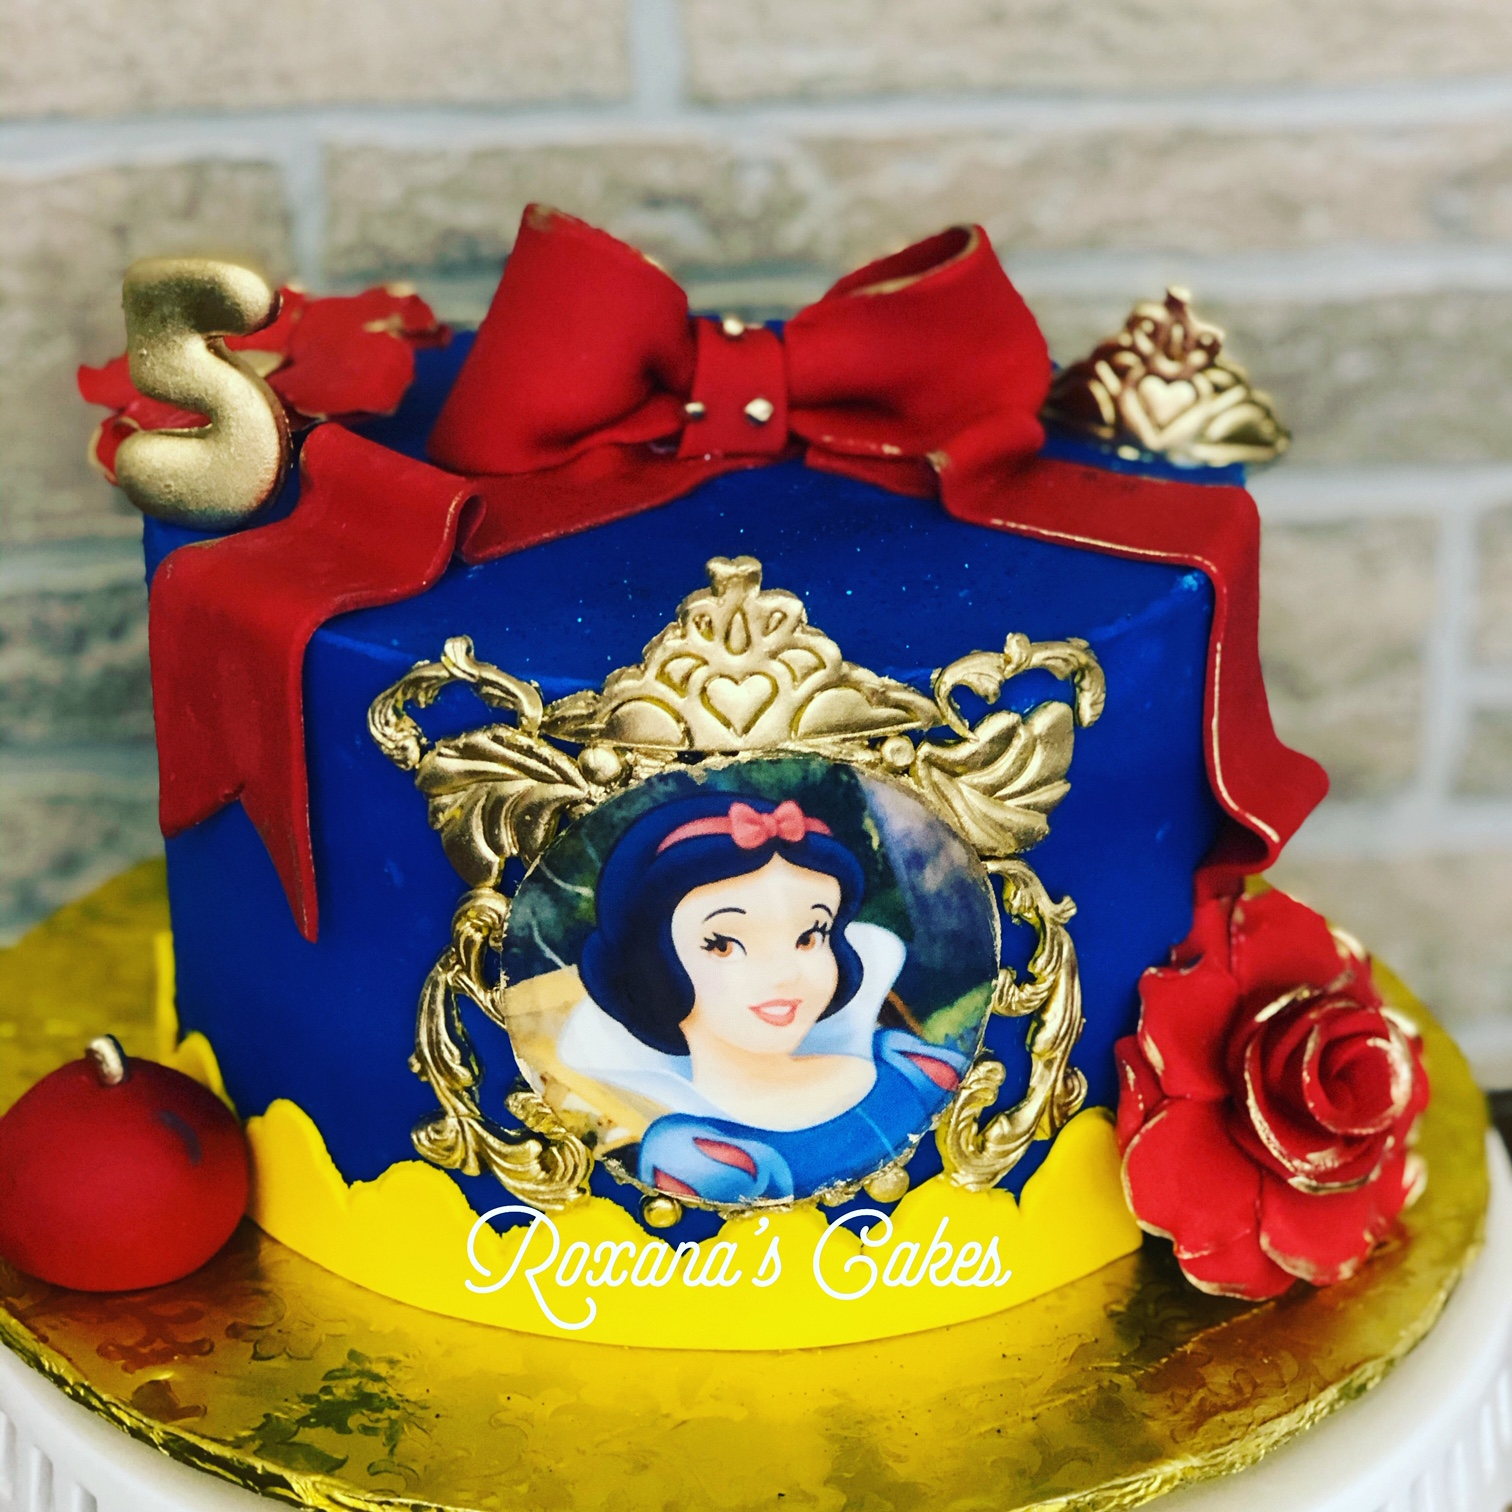 Awe Inspiring Baking With Roxanas Cakes Snow White Birthday Cake Funny Birthday Cards Online Aeocydamsfinfo